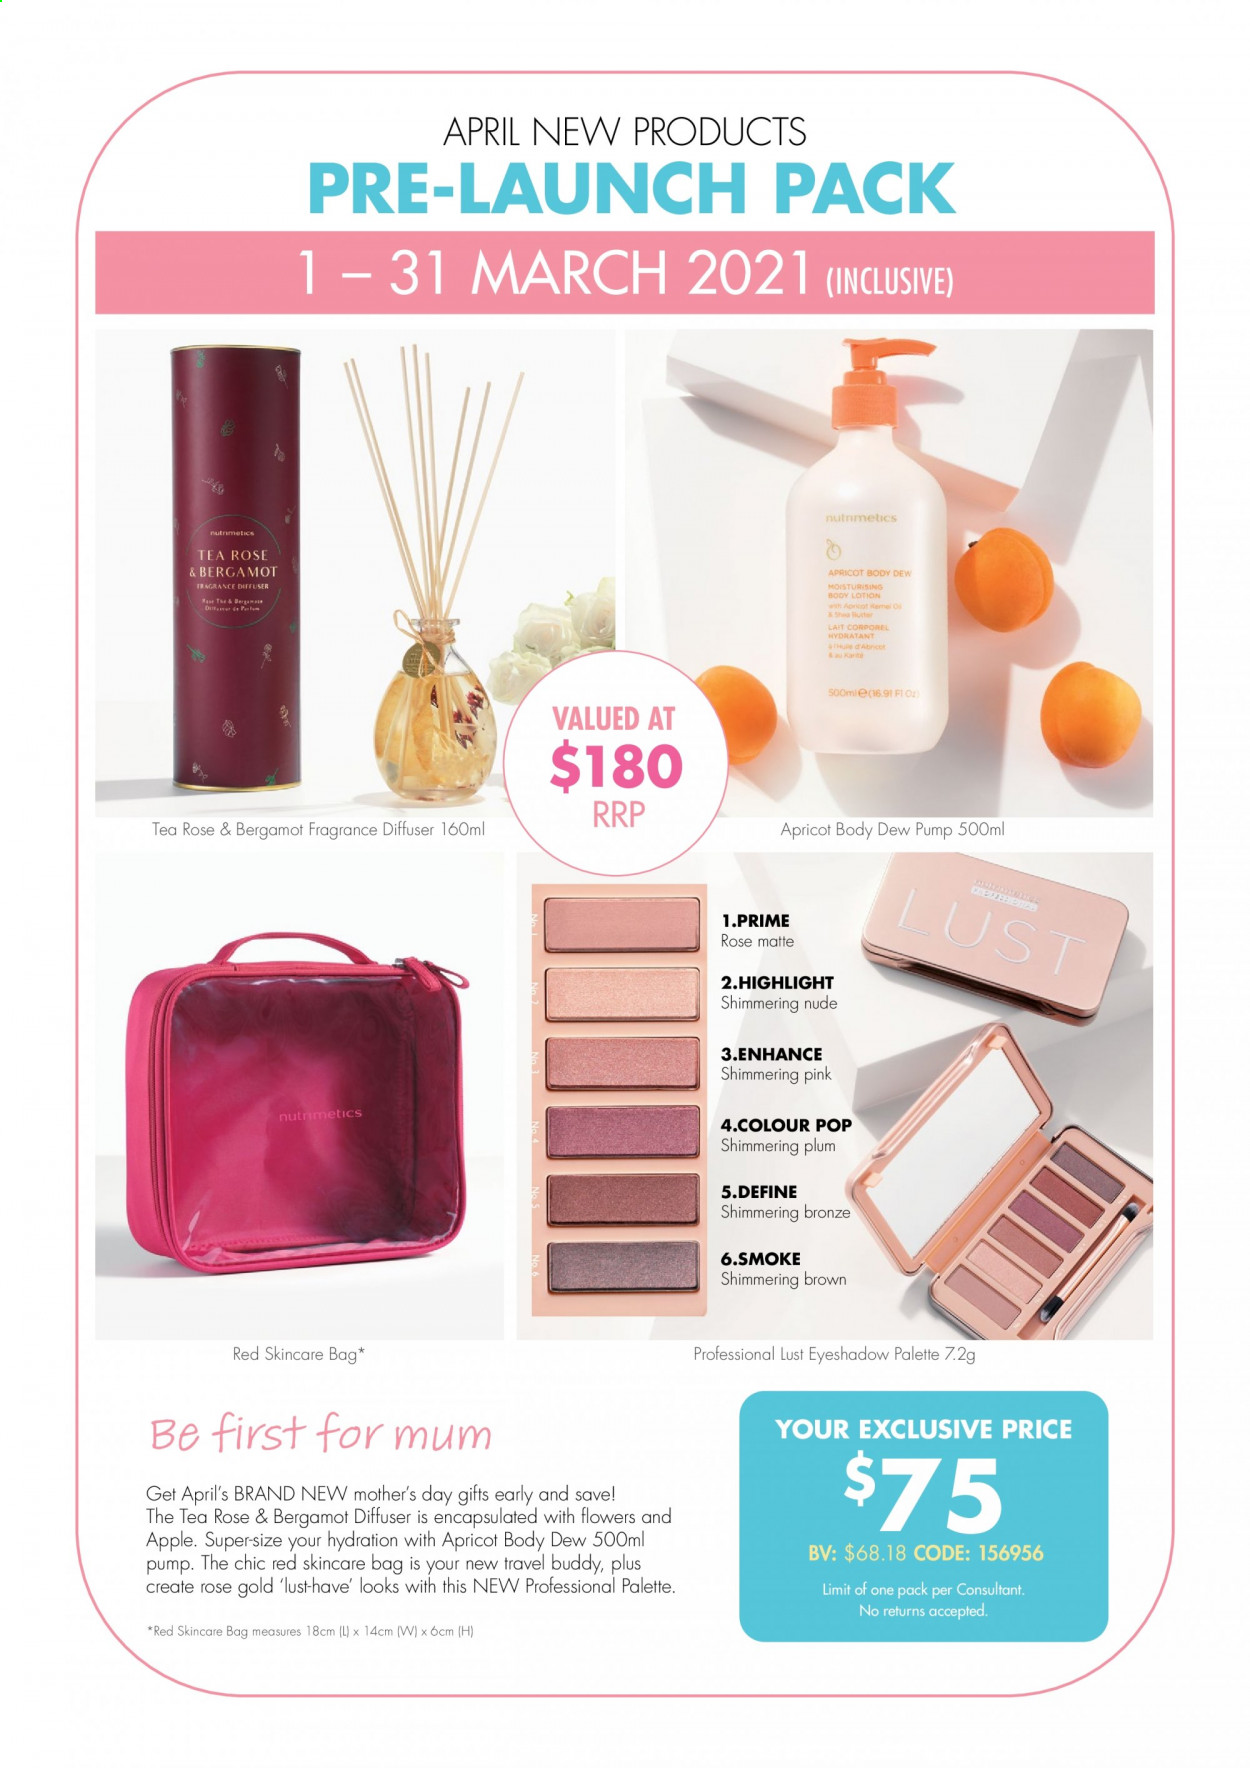 Nutrimetics Catalogue - 1.3.2021 - 31.3.2021 - Sales products - Palette, fragrance, Mum, eyeshadow, pump, bag. Page 1.